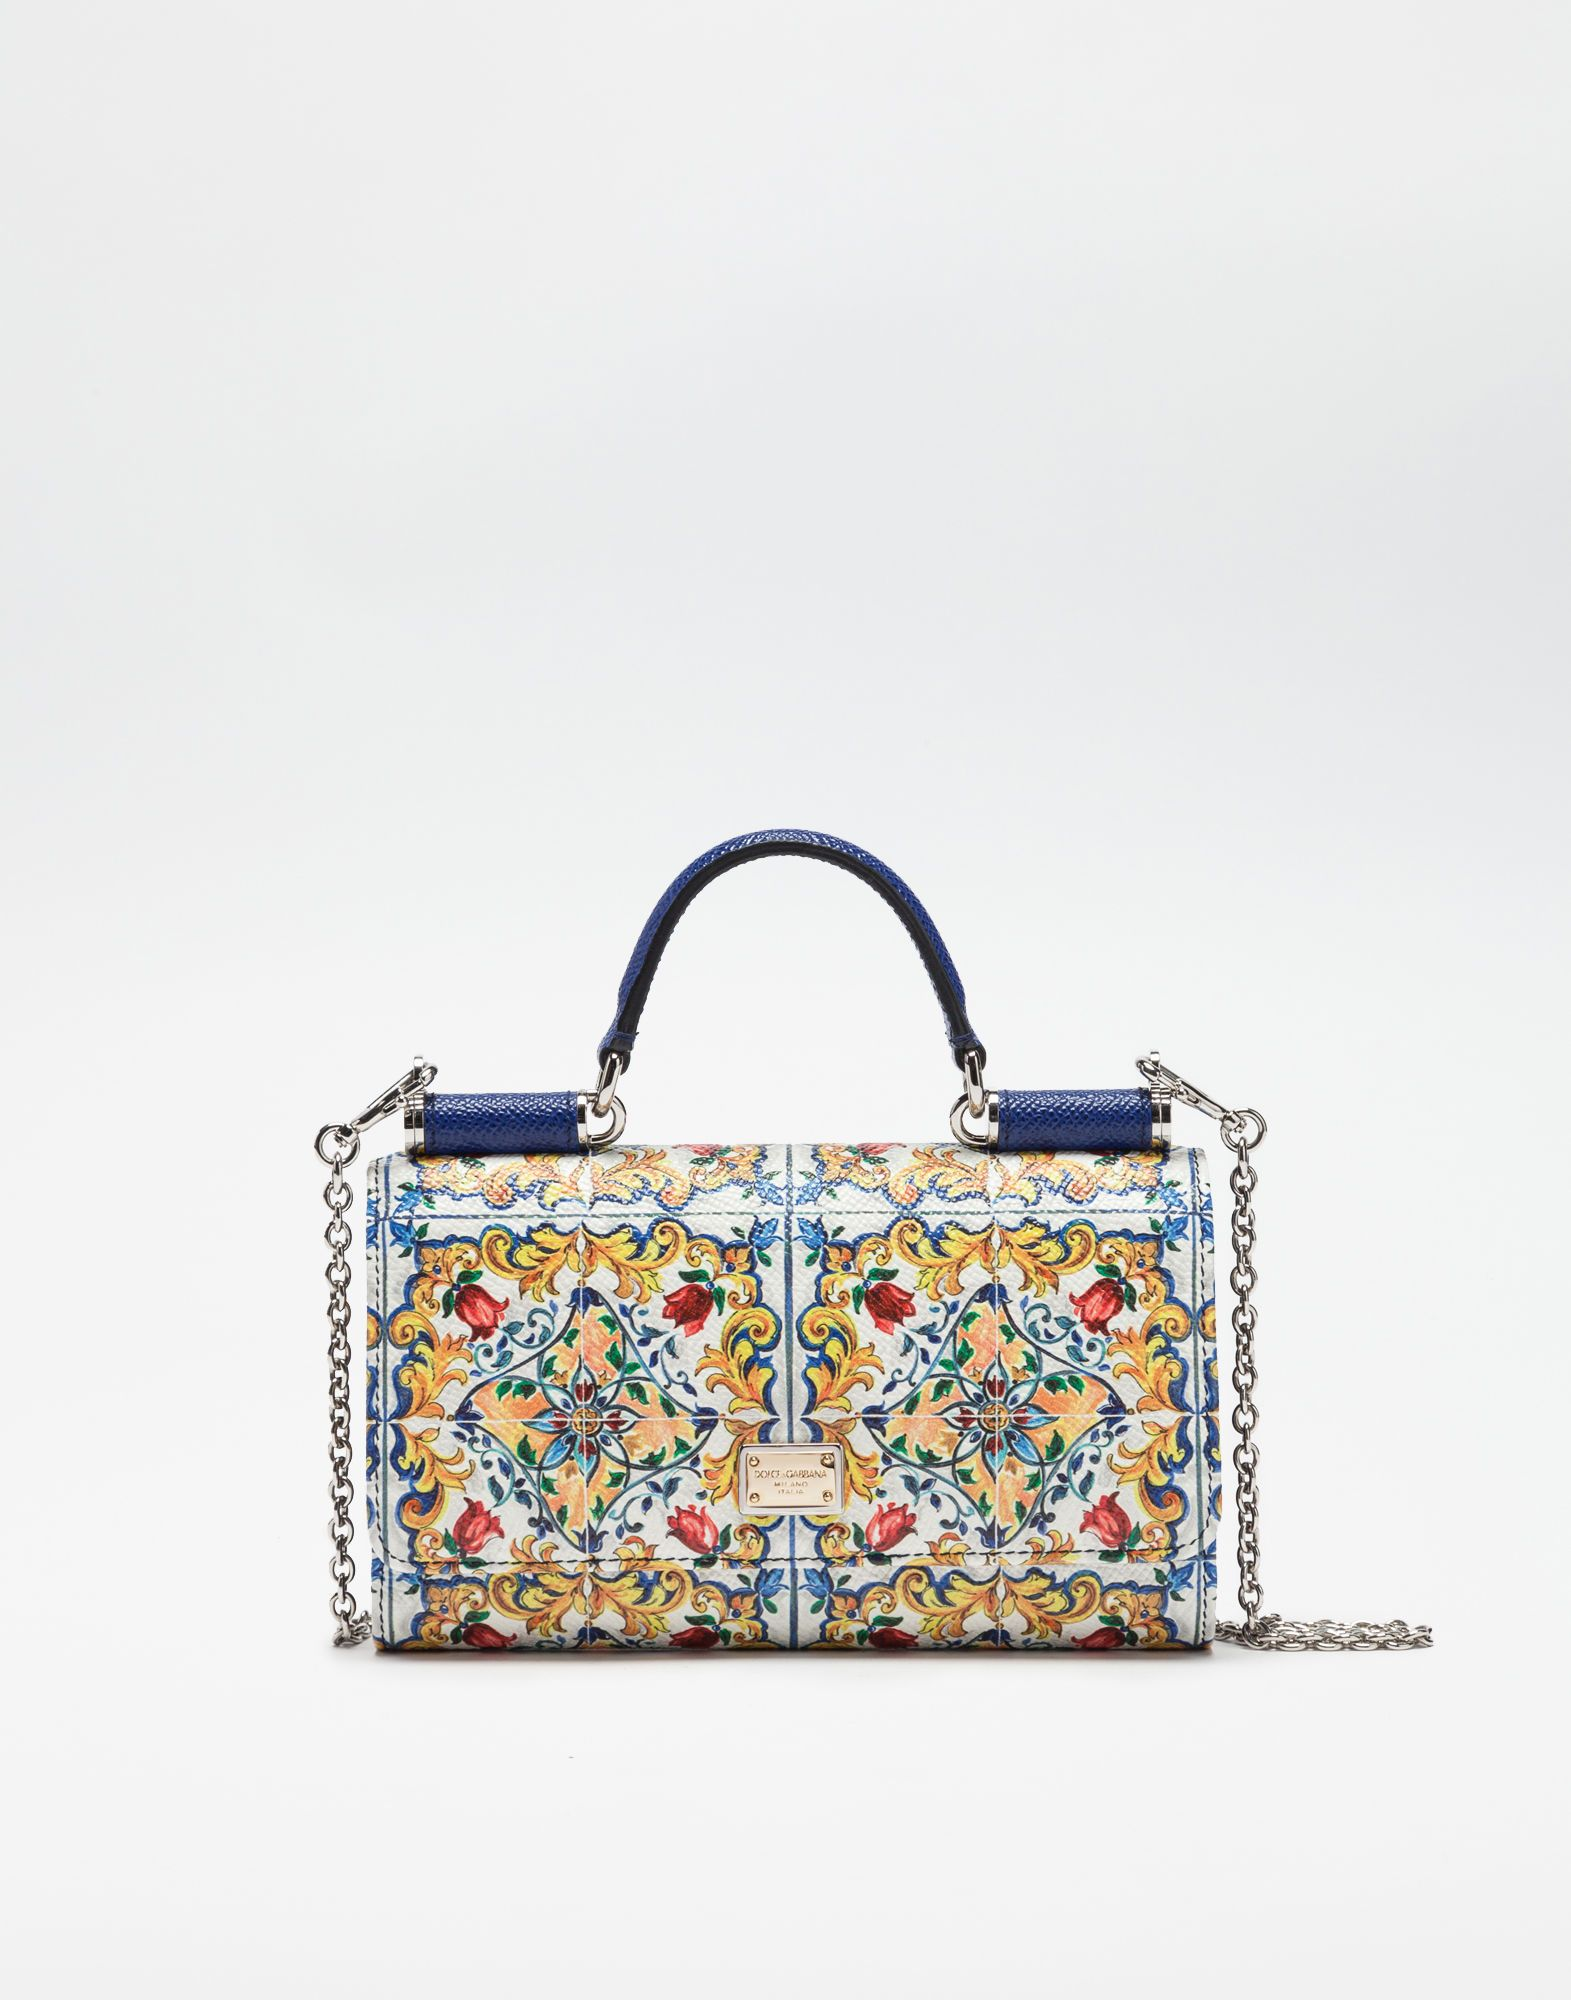 Dolce Gabbana  MINI VON BAG IN PRINTED DAUPHINE LEATHER  fa09b4eaaa422